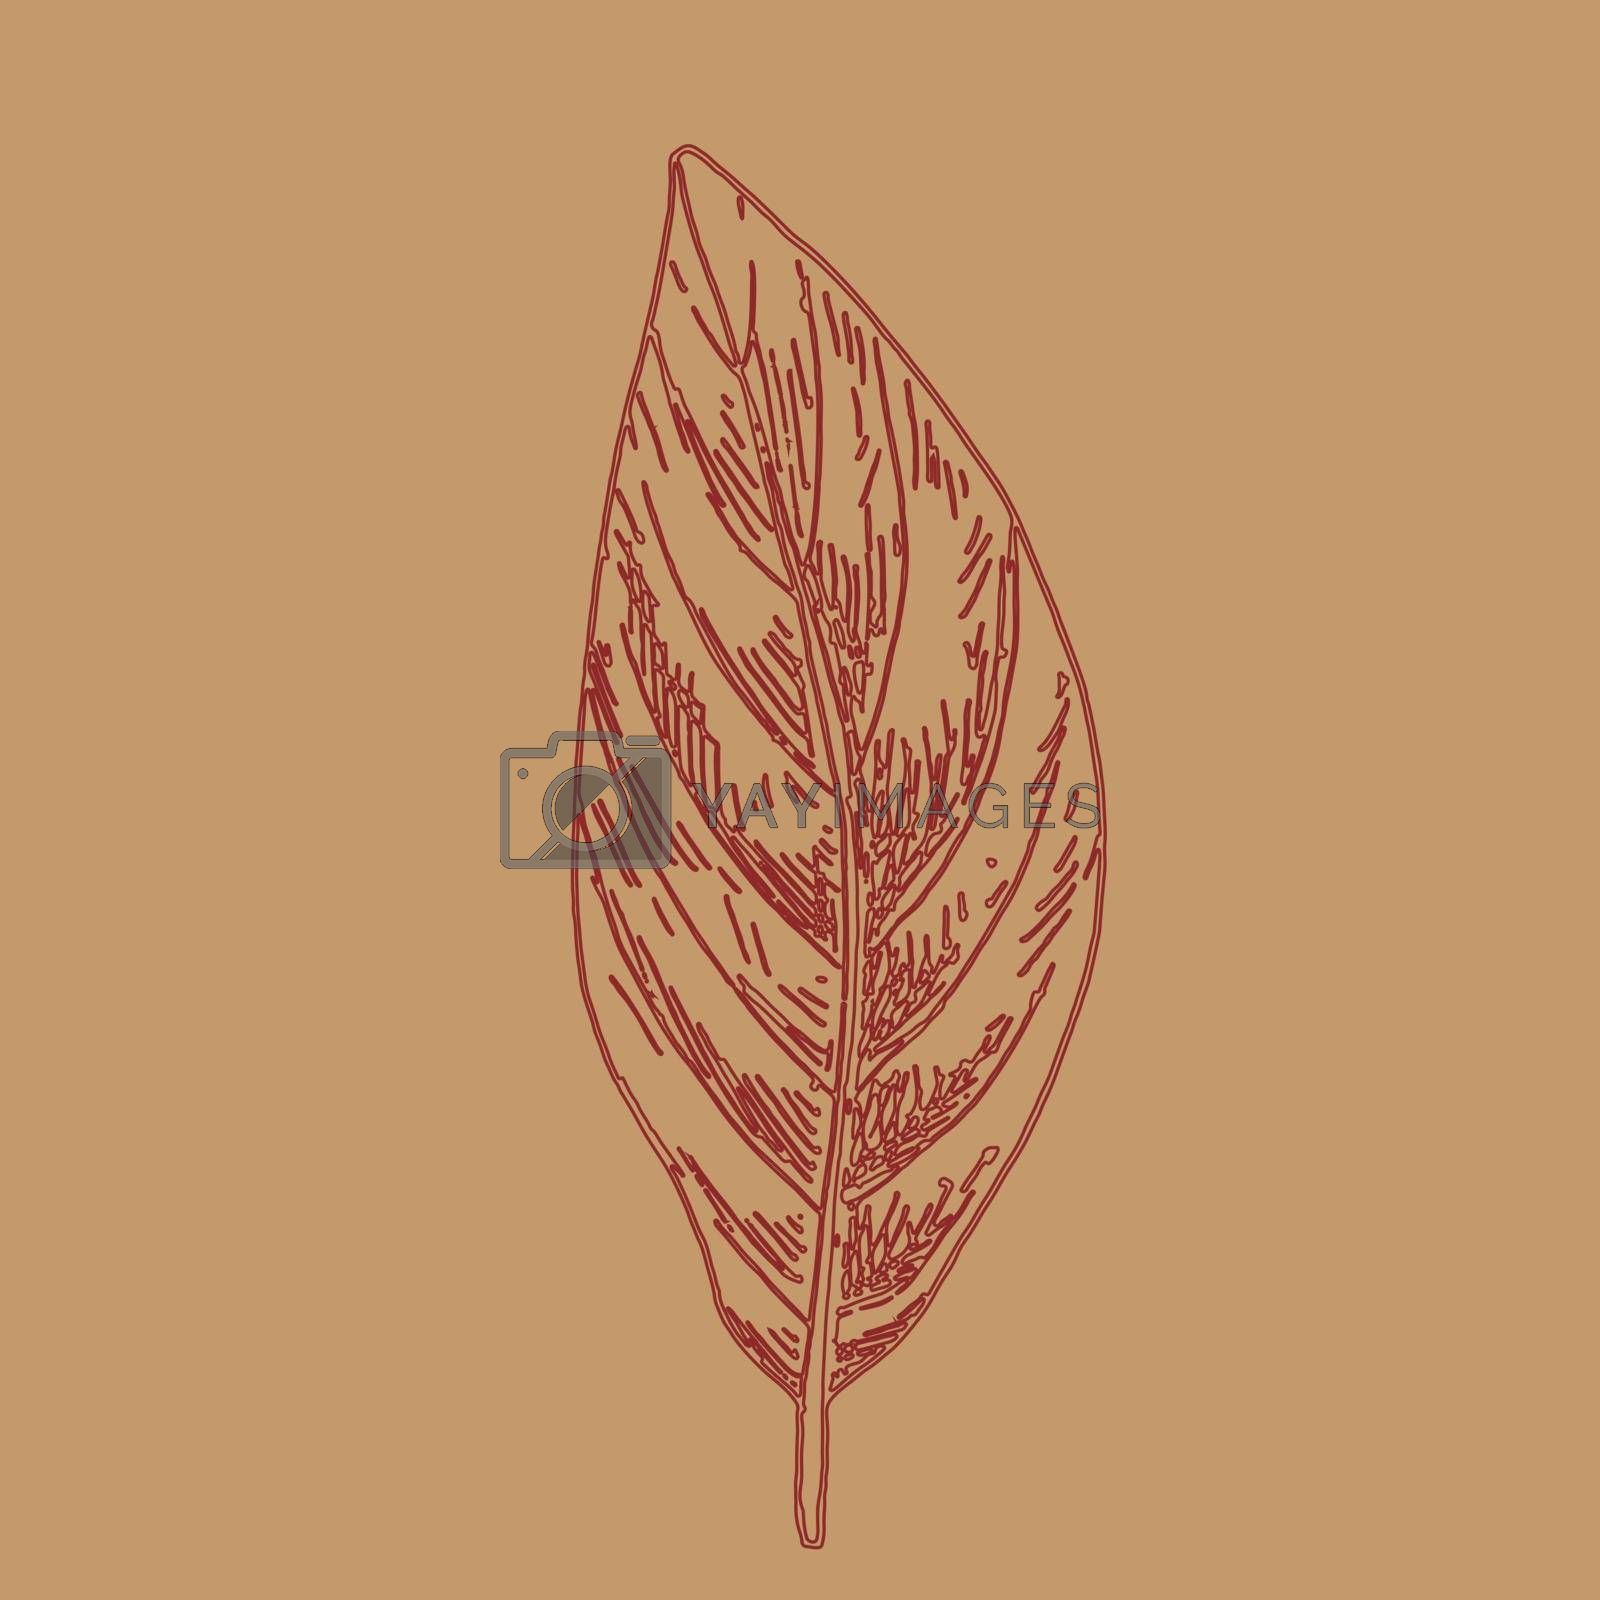 Hand drawn leaf outline. Autumn leaf in line art style isolated on brown background